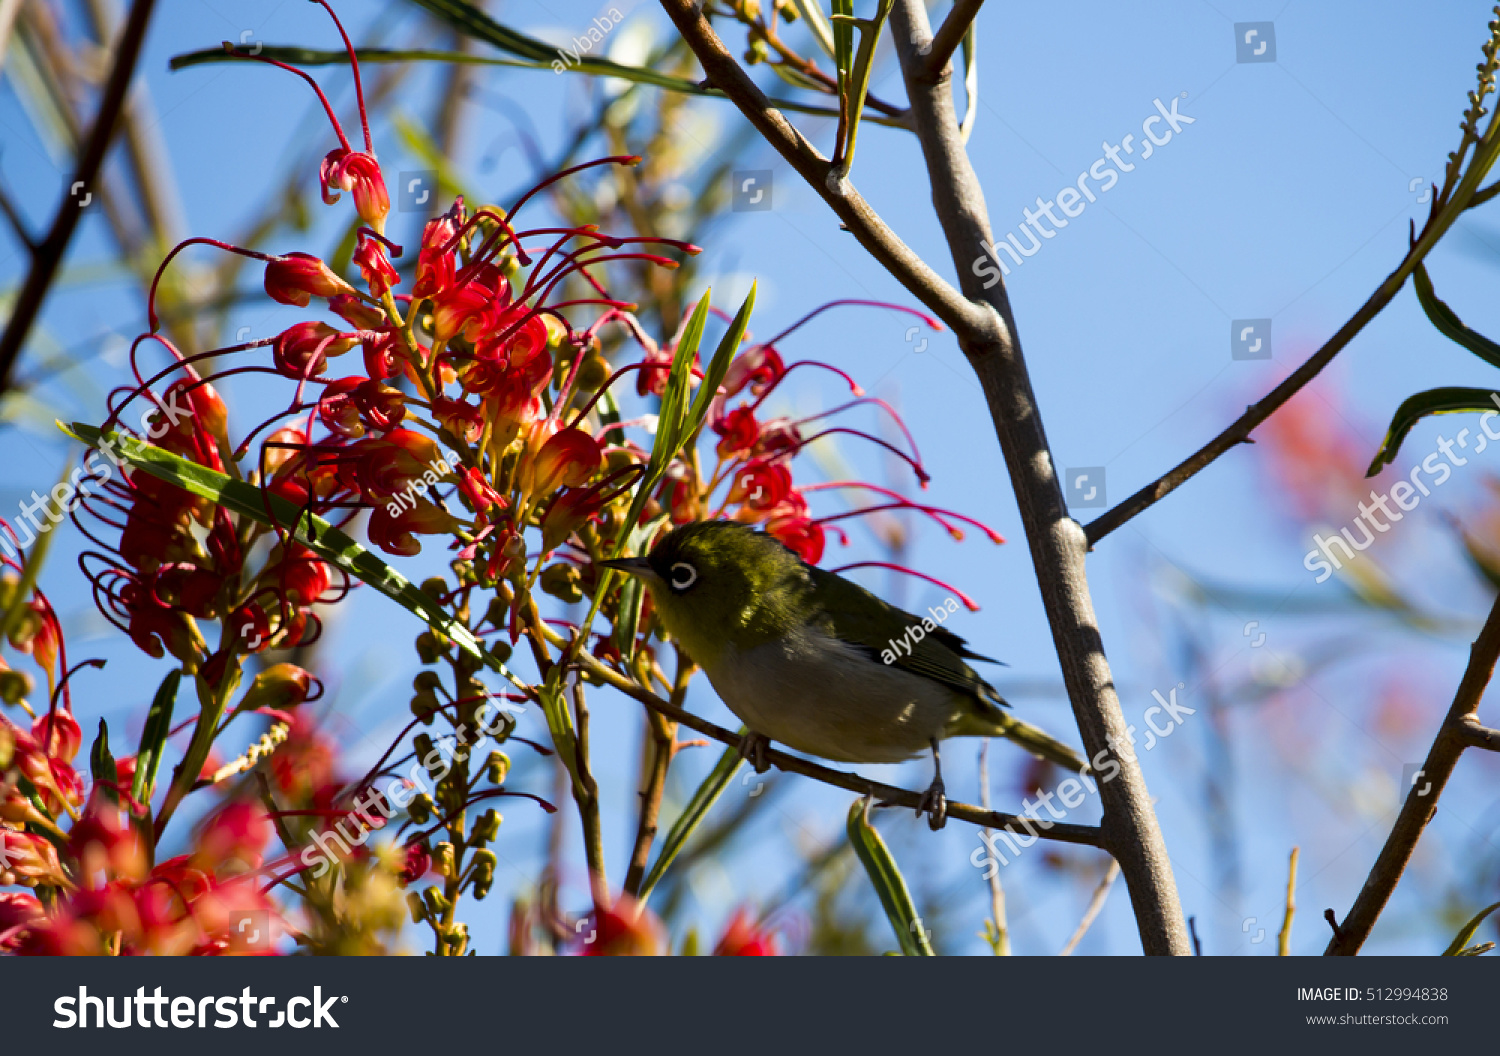 Very small silvereye waxeye zosterops lateralis stock - Olive garden early bird specials ...